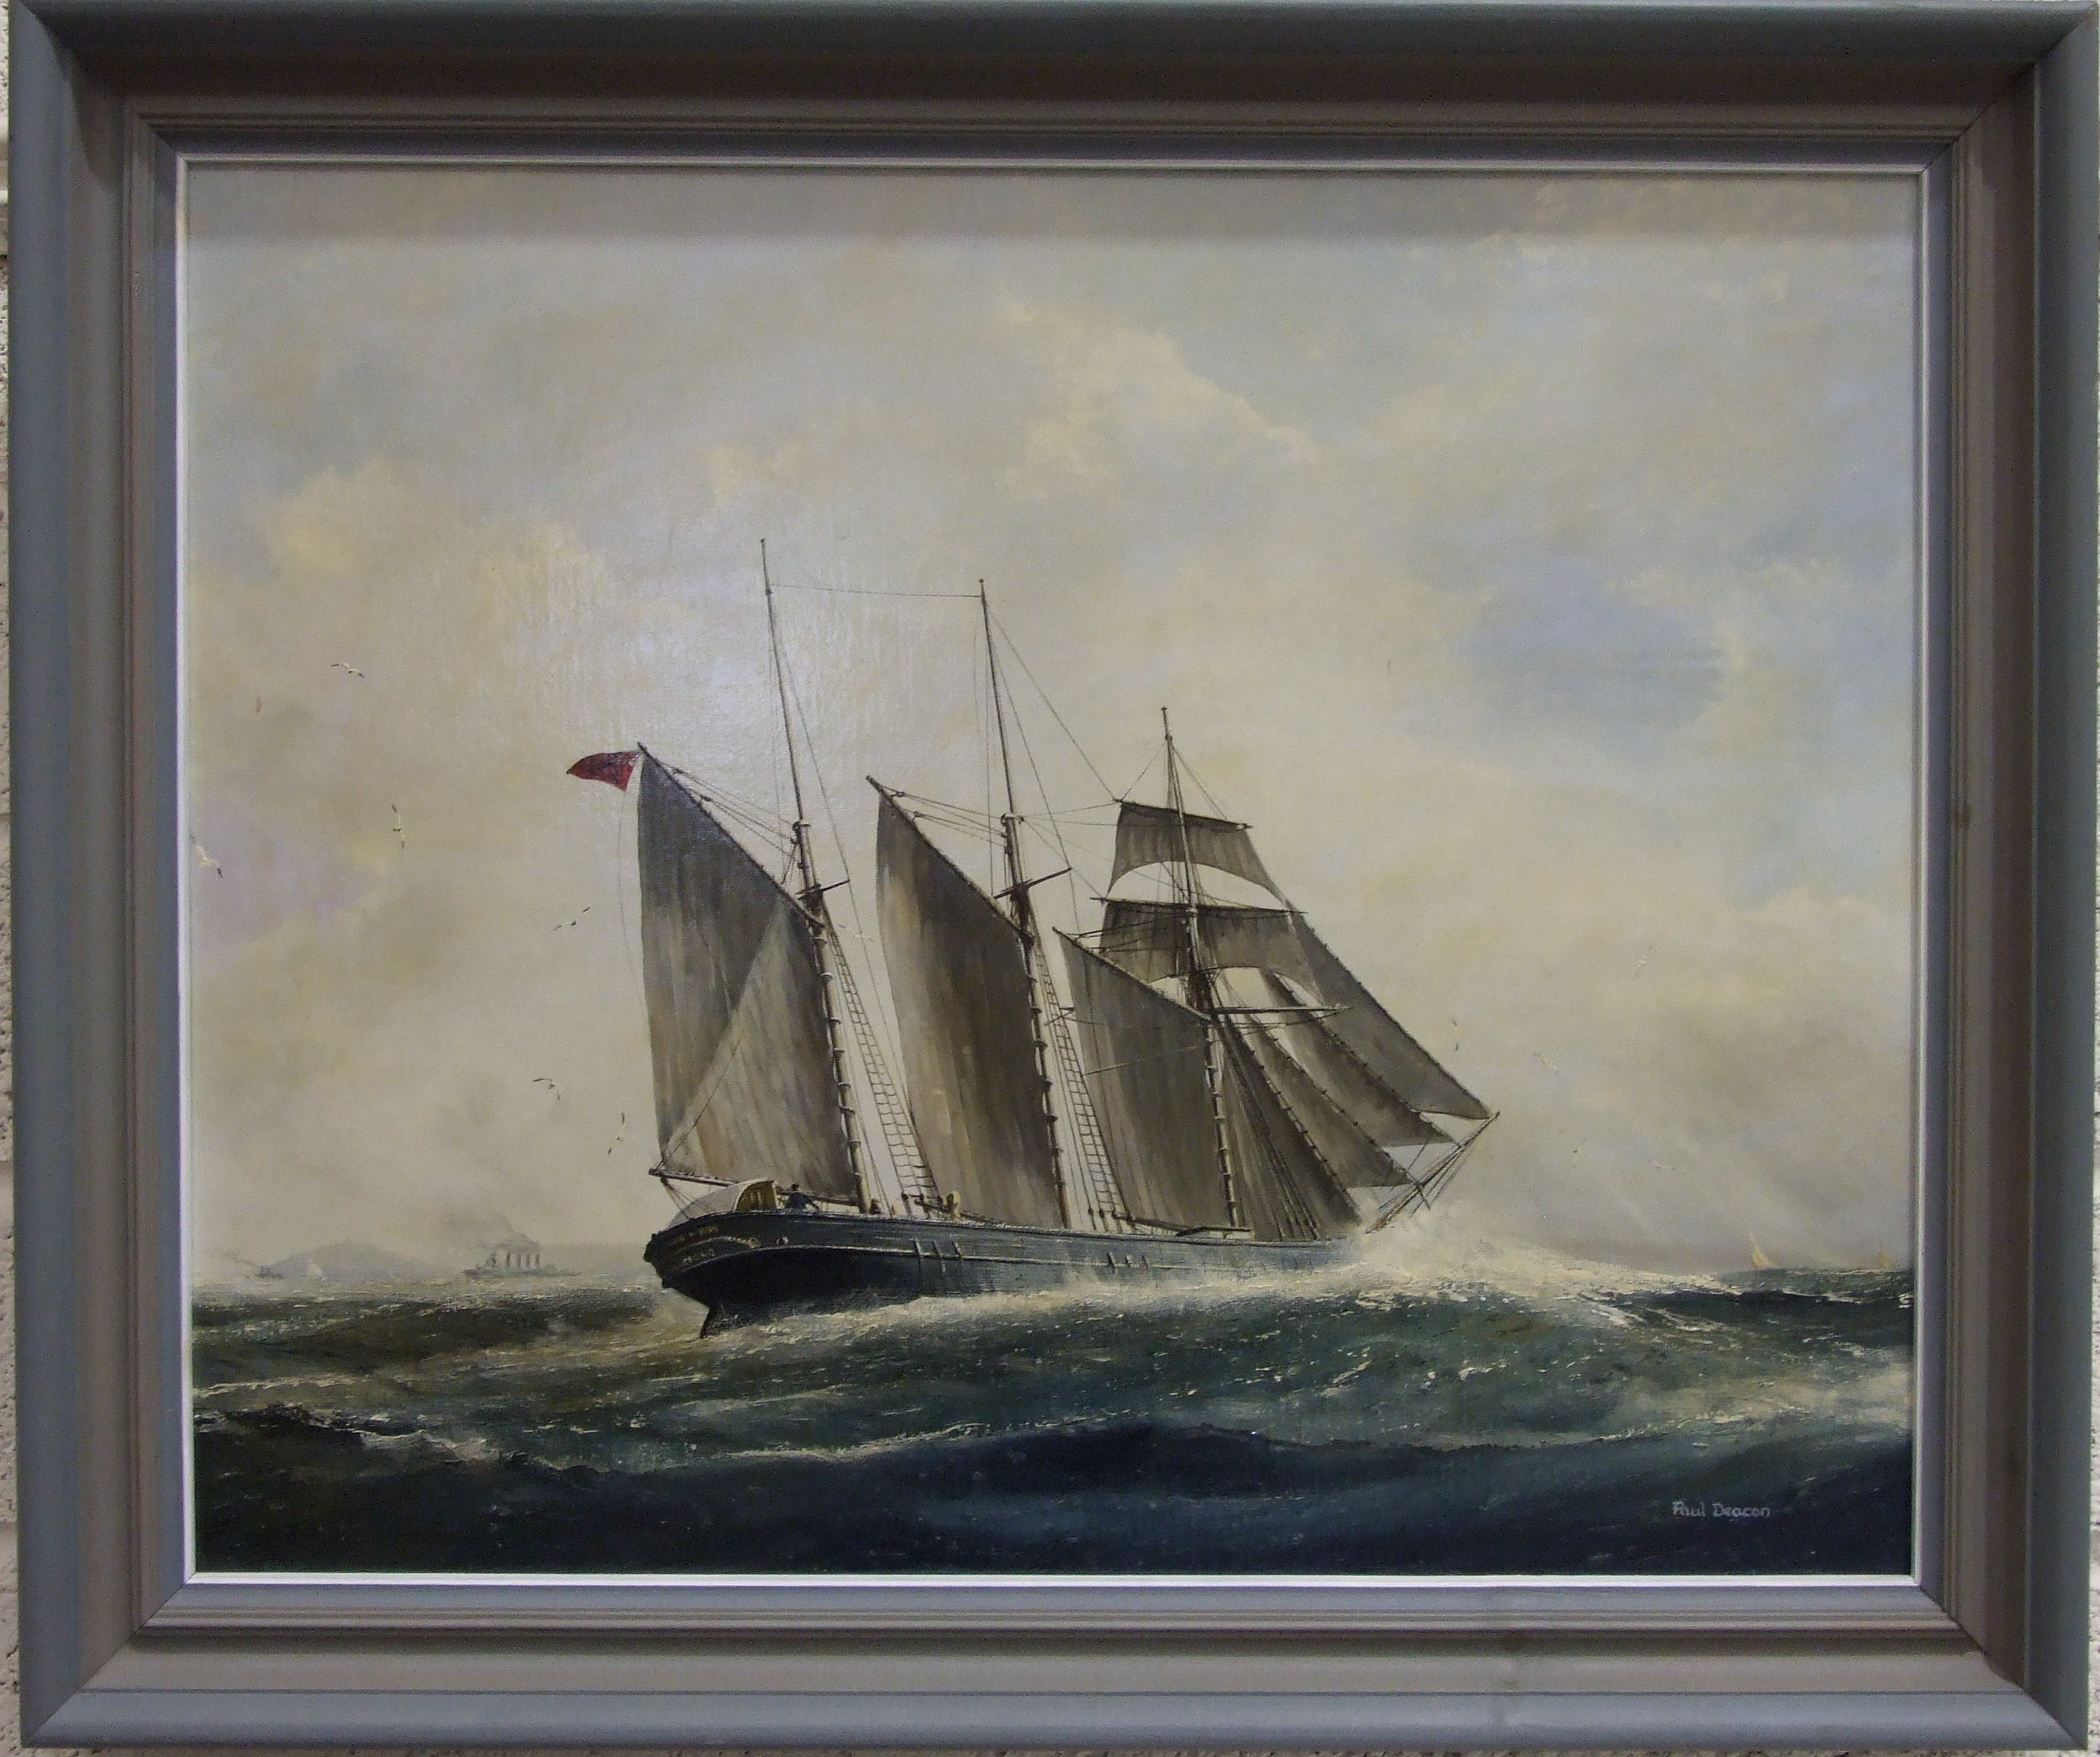 Paul Deacon, 'Kathleen & May, Famous Plymouth Schooner heading in under Rame Head towards the